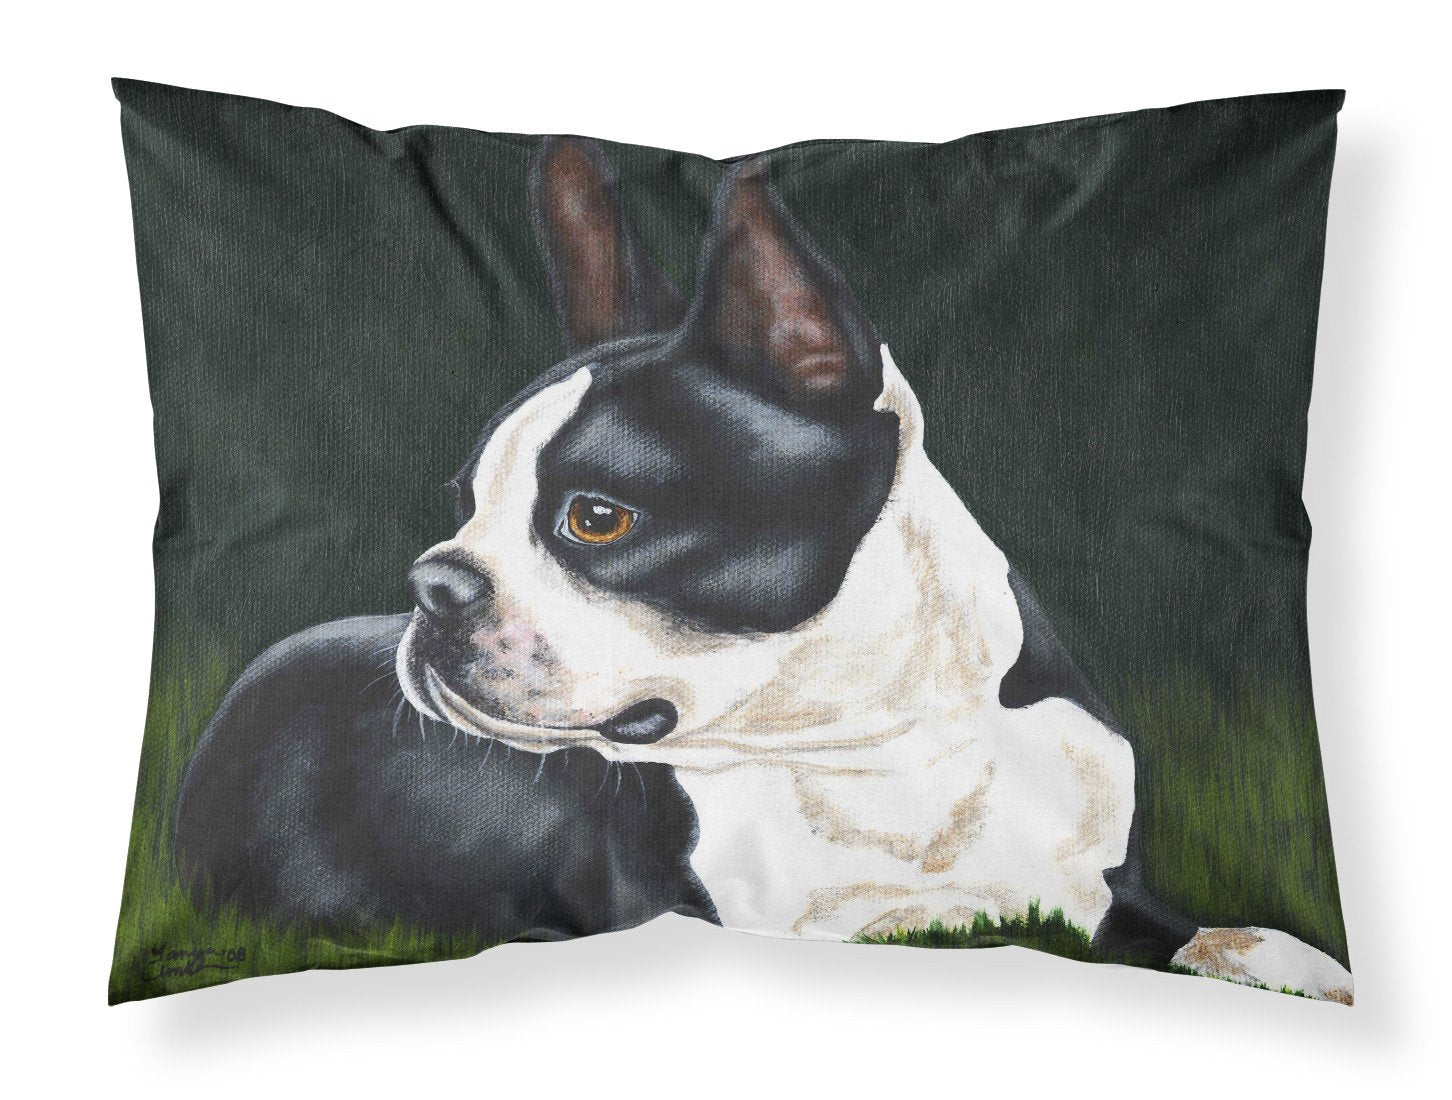 Boston Terrier Beauty Fabric Standard Pillowcase AMB1321PILLOWCASE by Caroline's Treasures